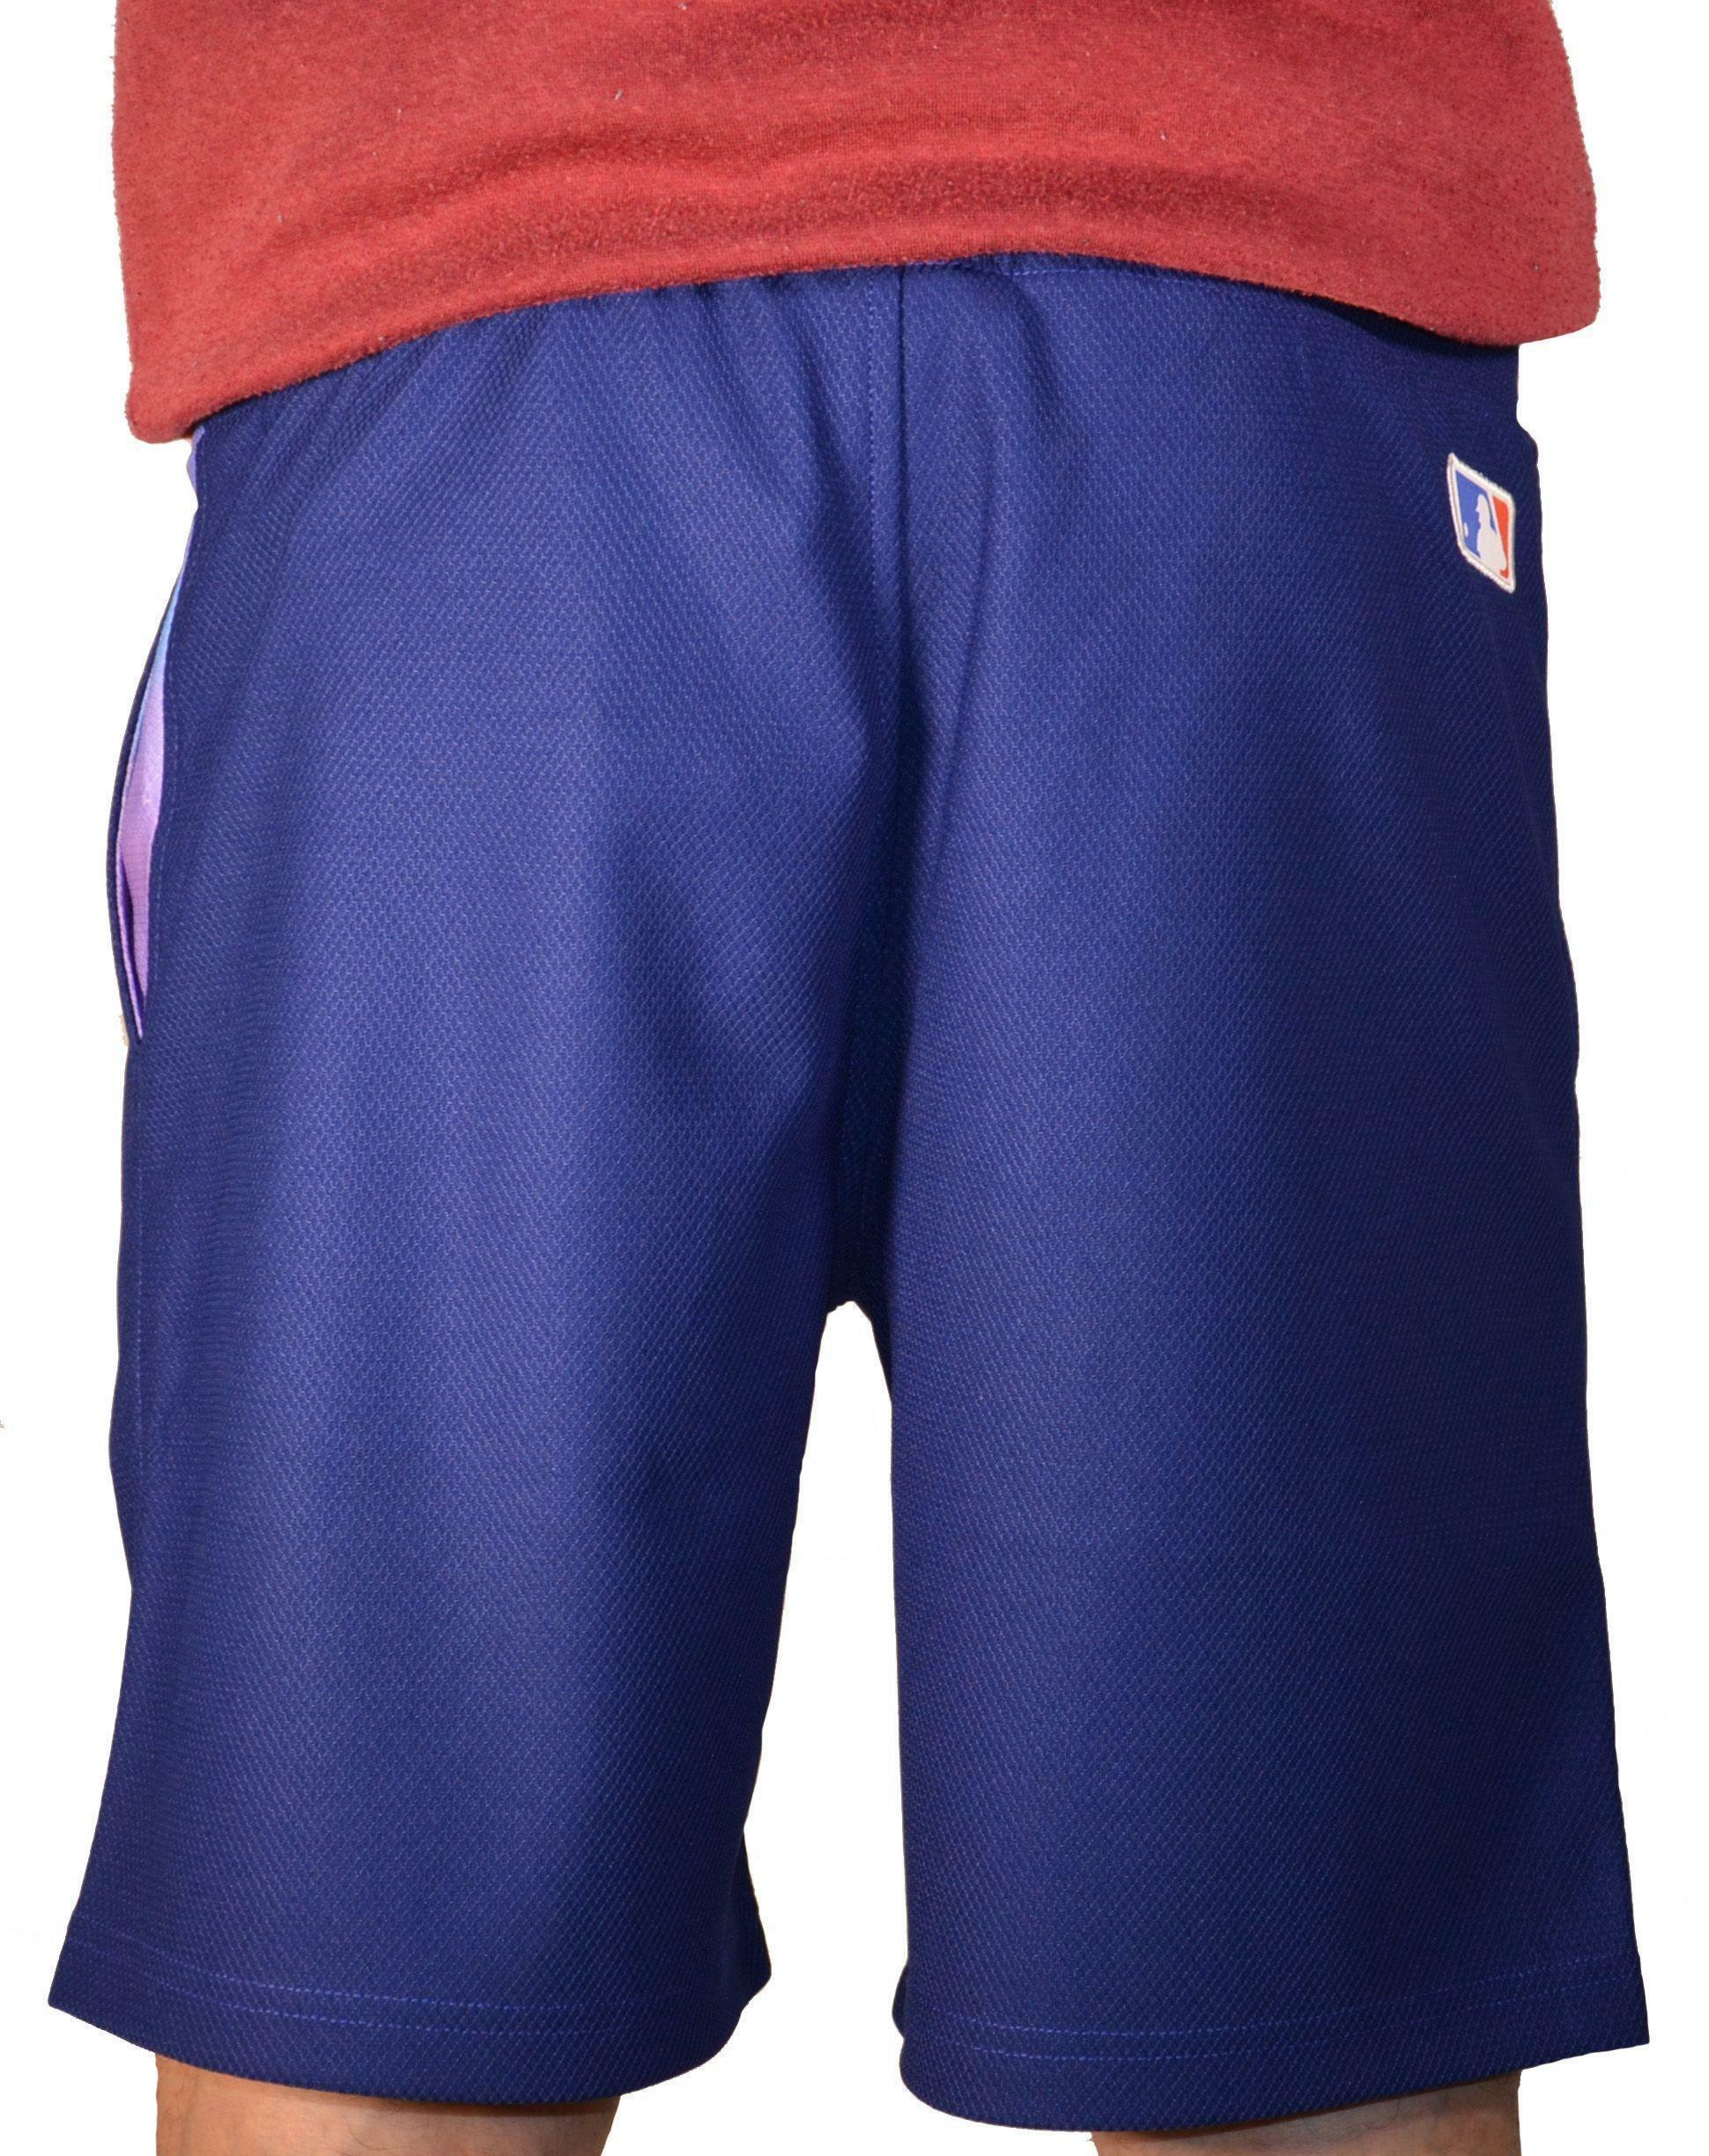 new era west coast pantaloncini uomo blu